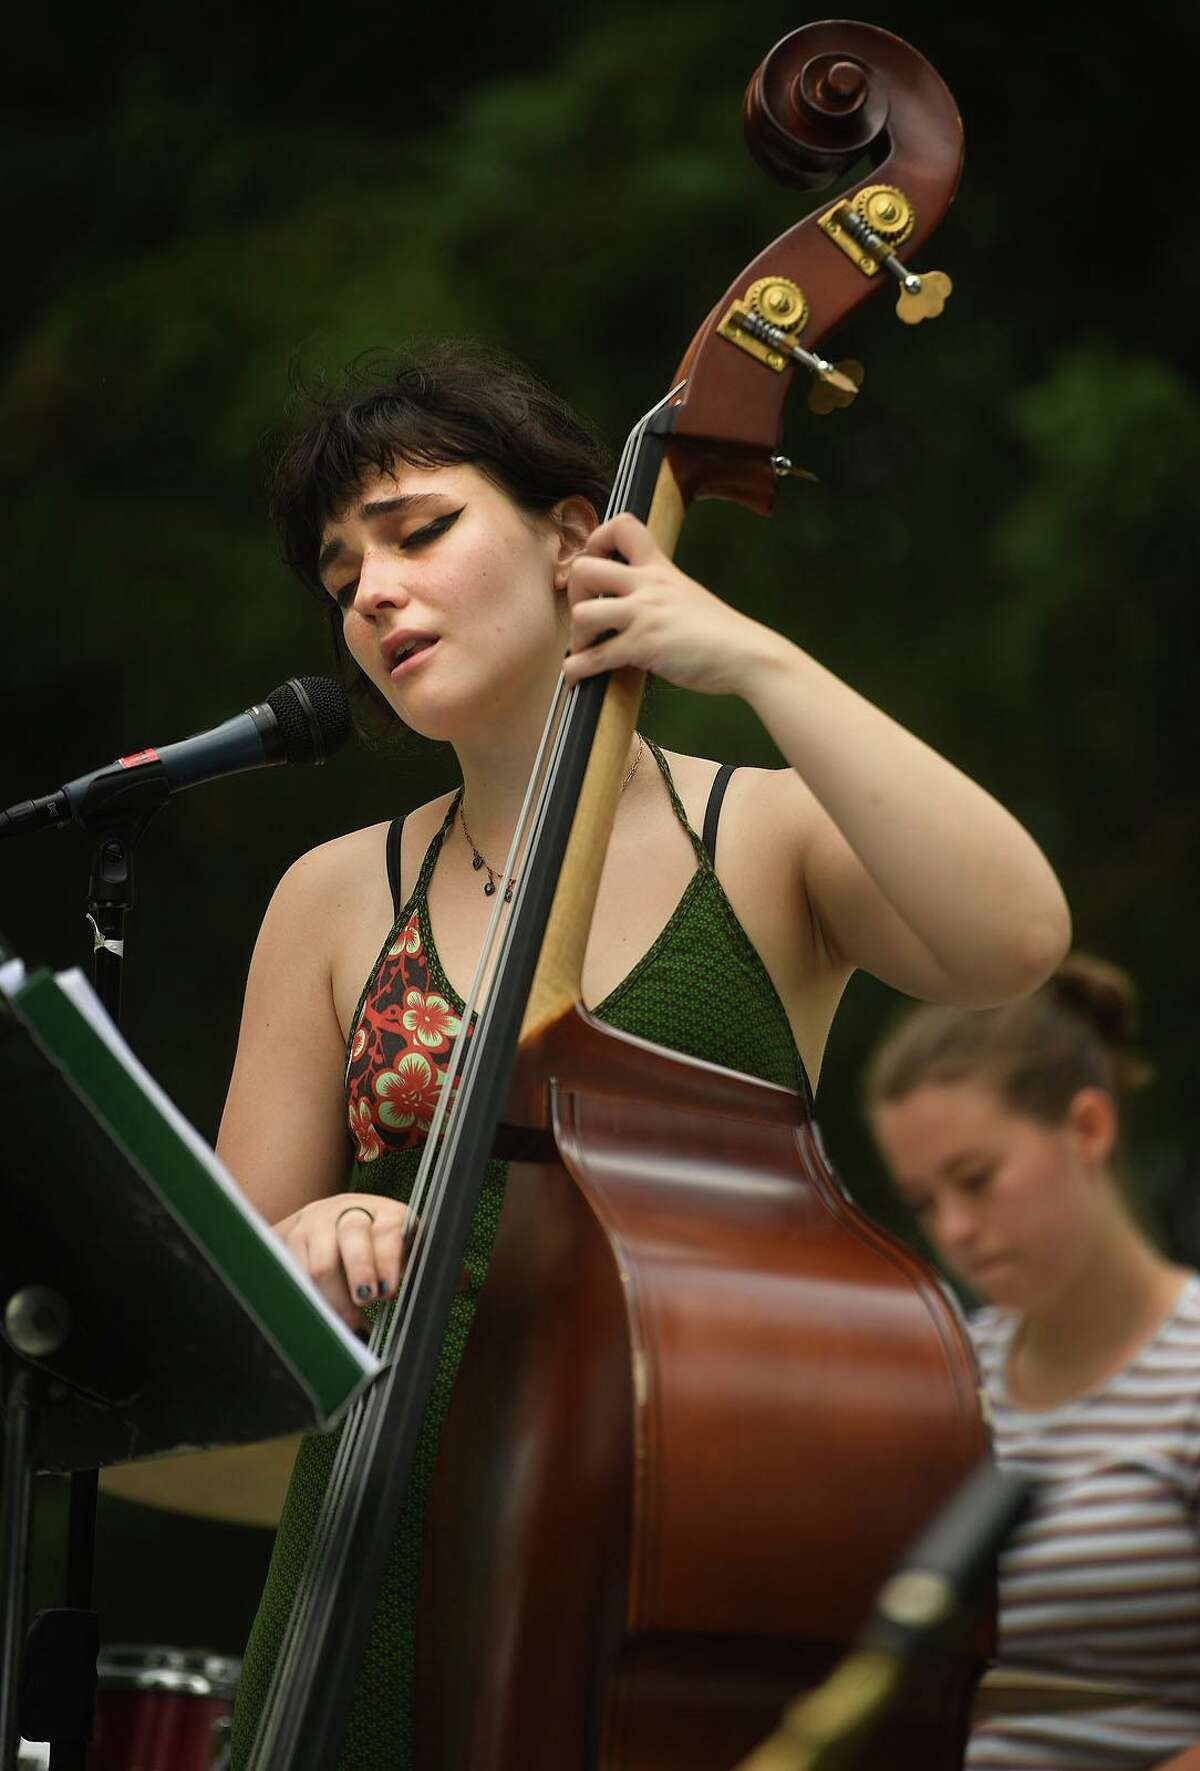 """Bassist Sarah Dimicelli, of Ridgefield, sings the classic """"Lullaby of Birdland"""" during a Make Music Day jazz performance by the Scott Robert Sextet at Ballard Park in Ridgefield, Conn. Monday, June 21, 2021."""